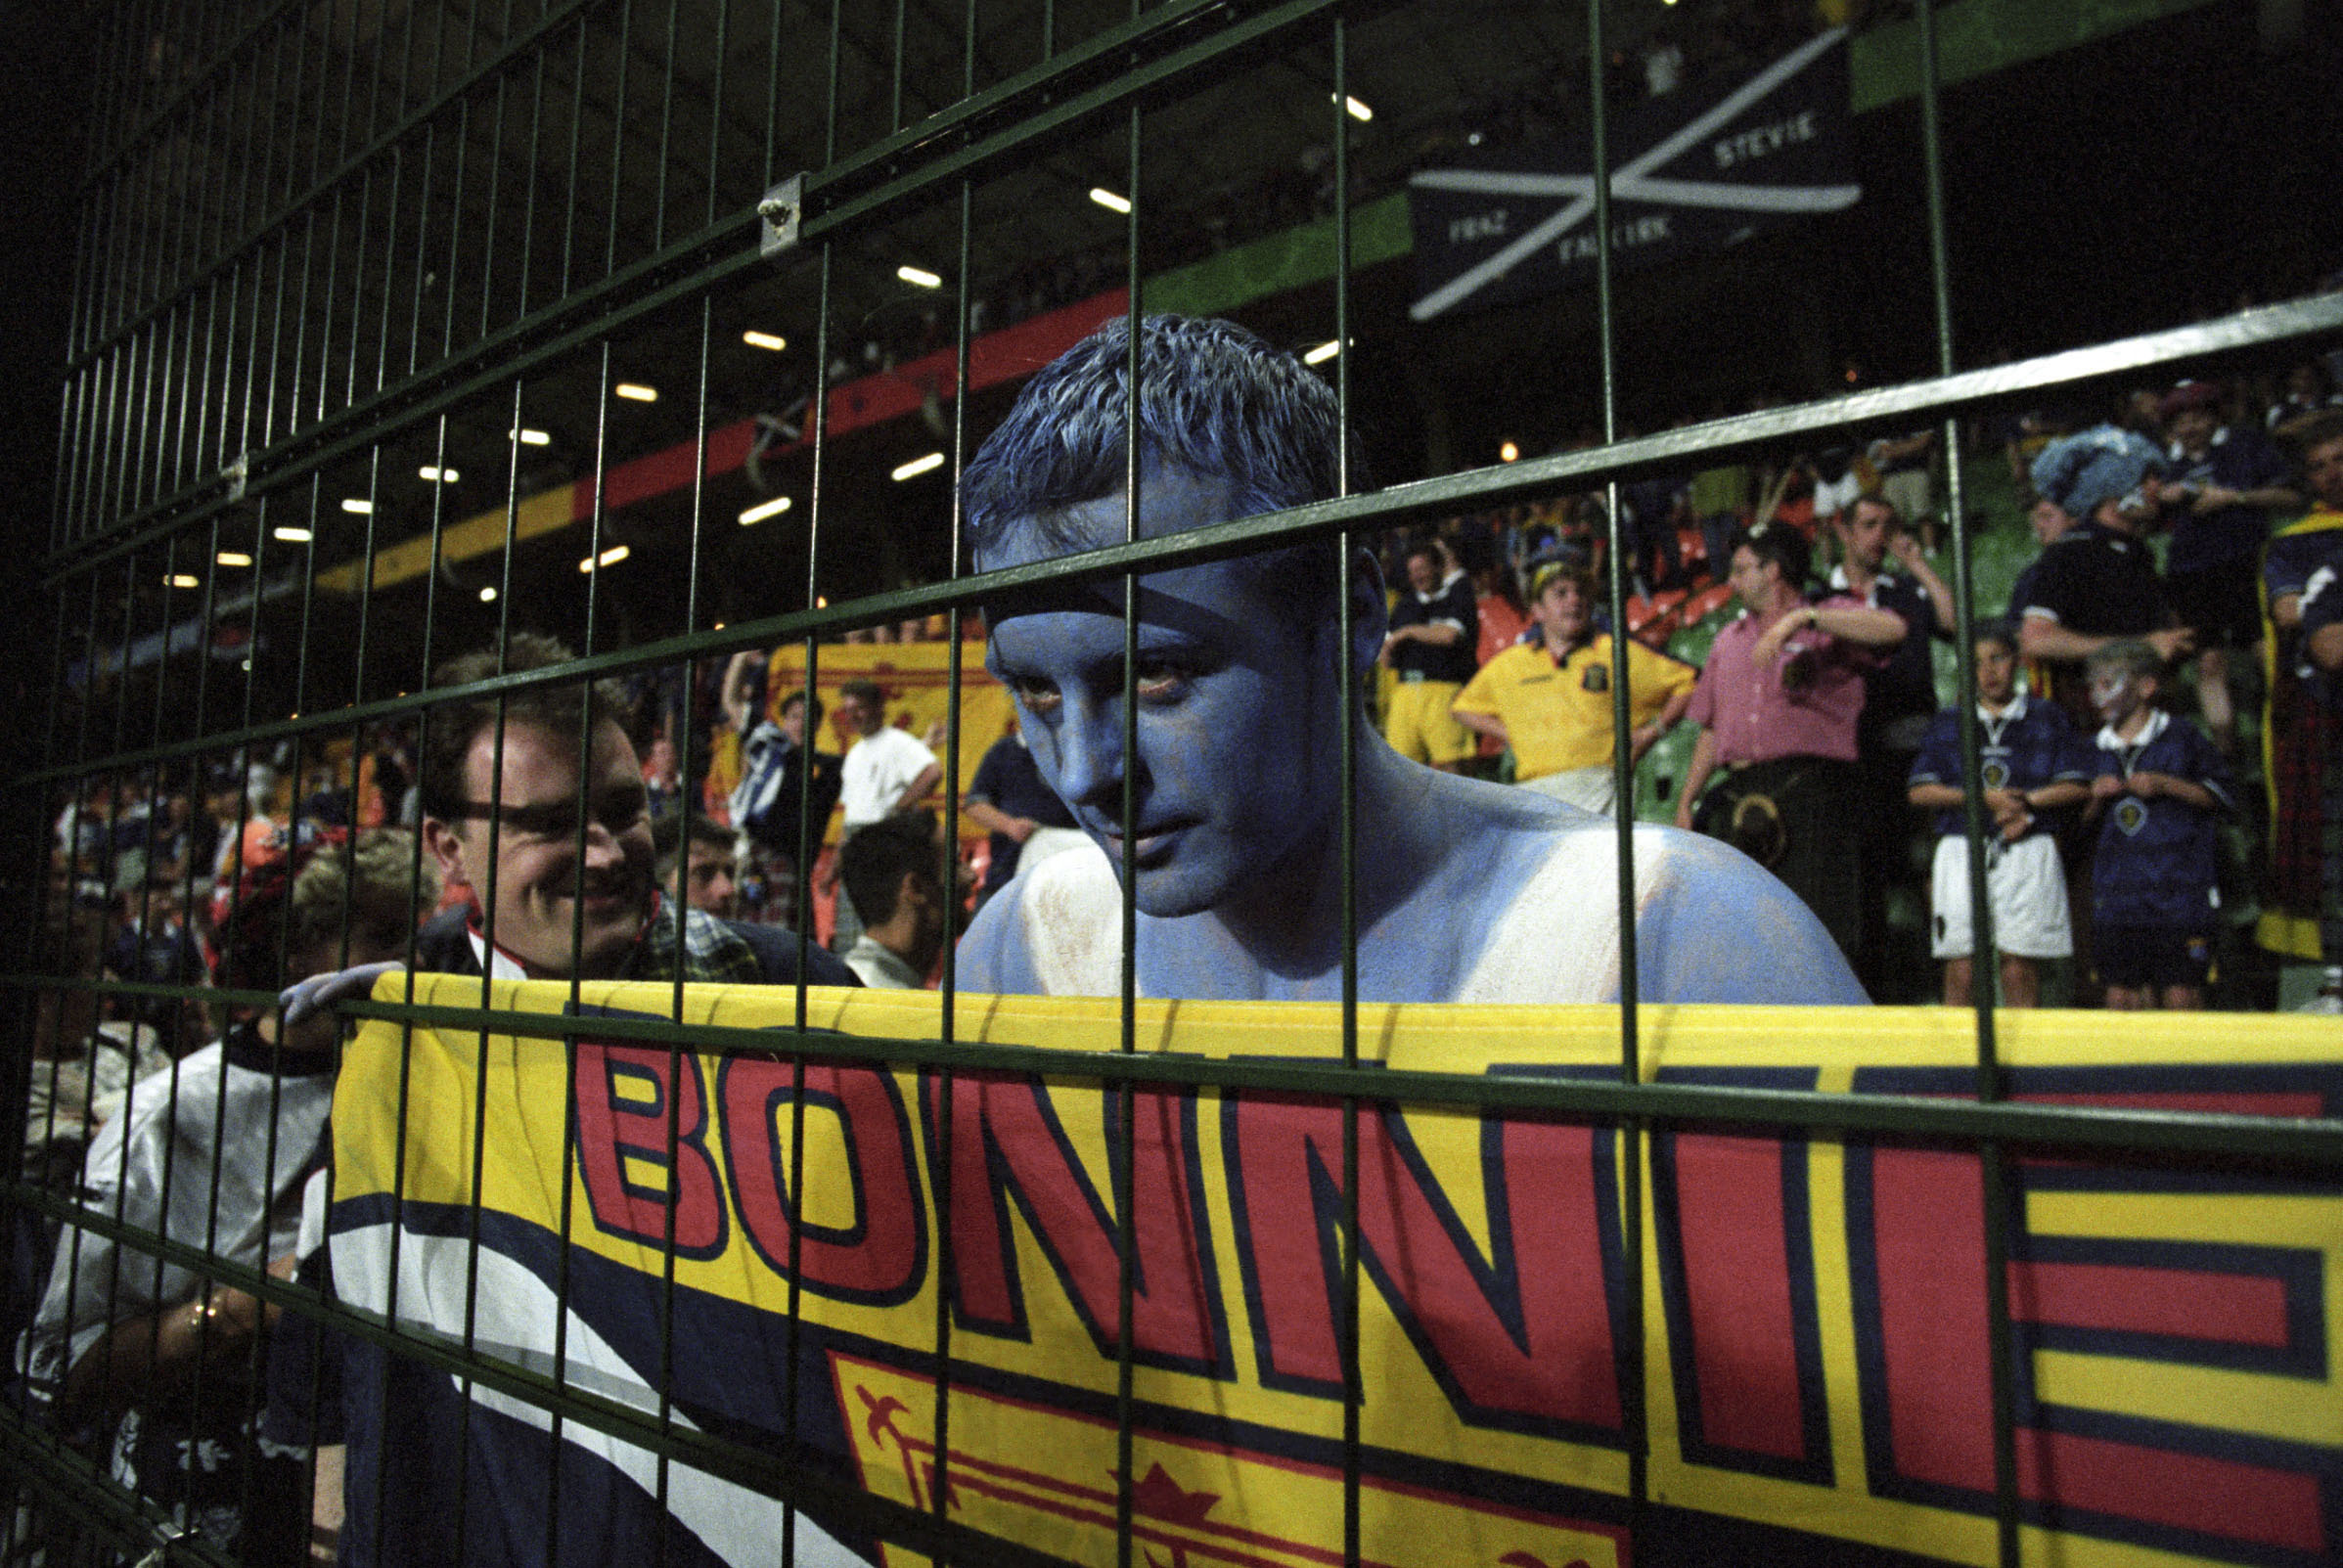 A Scotland fan at the 1998 World Cup.